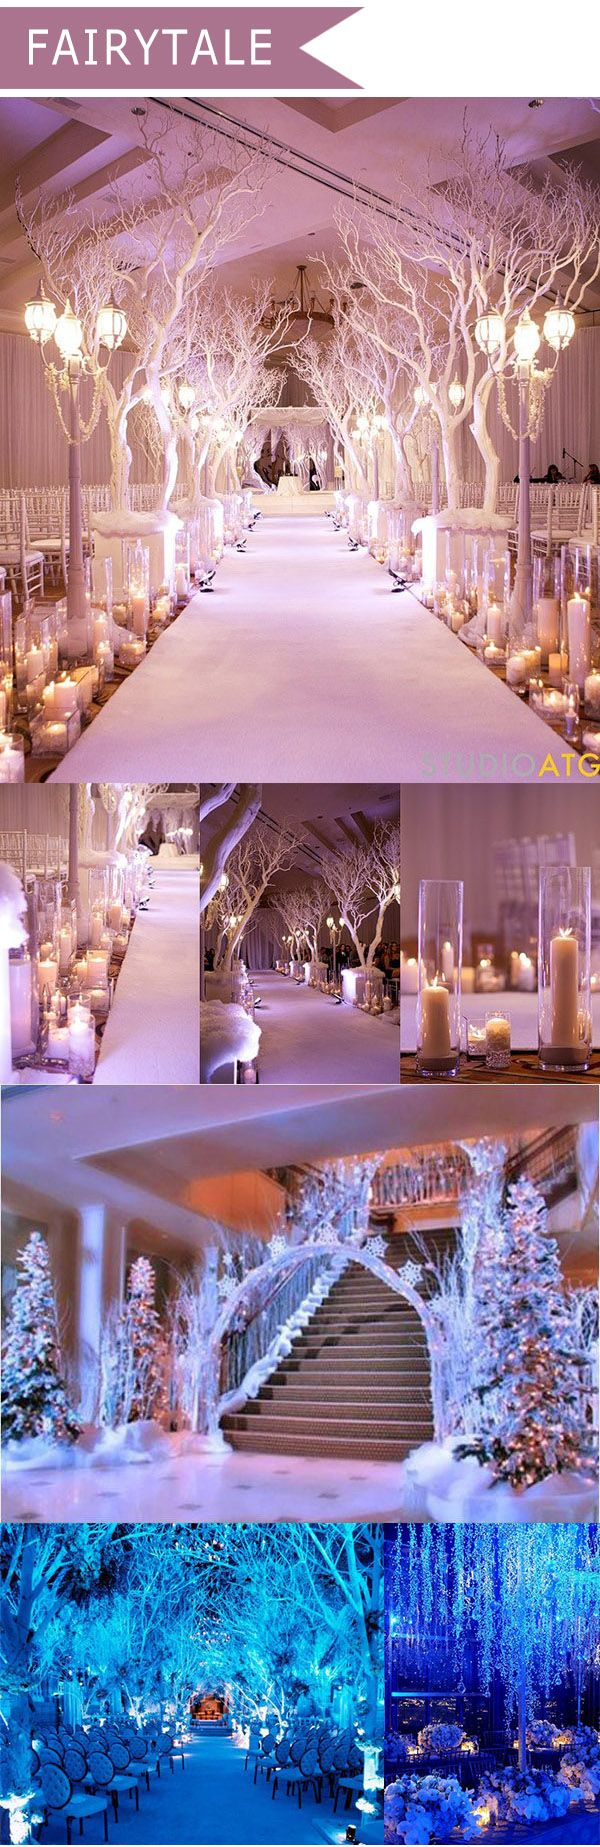 Best 25 prom decor ideas on pinterest prom themes diy wedding best 25 prom decor ideas on pinterest prom themes diy wedding centerpieces and diy 20s decorations junglespirit Choice Image